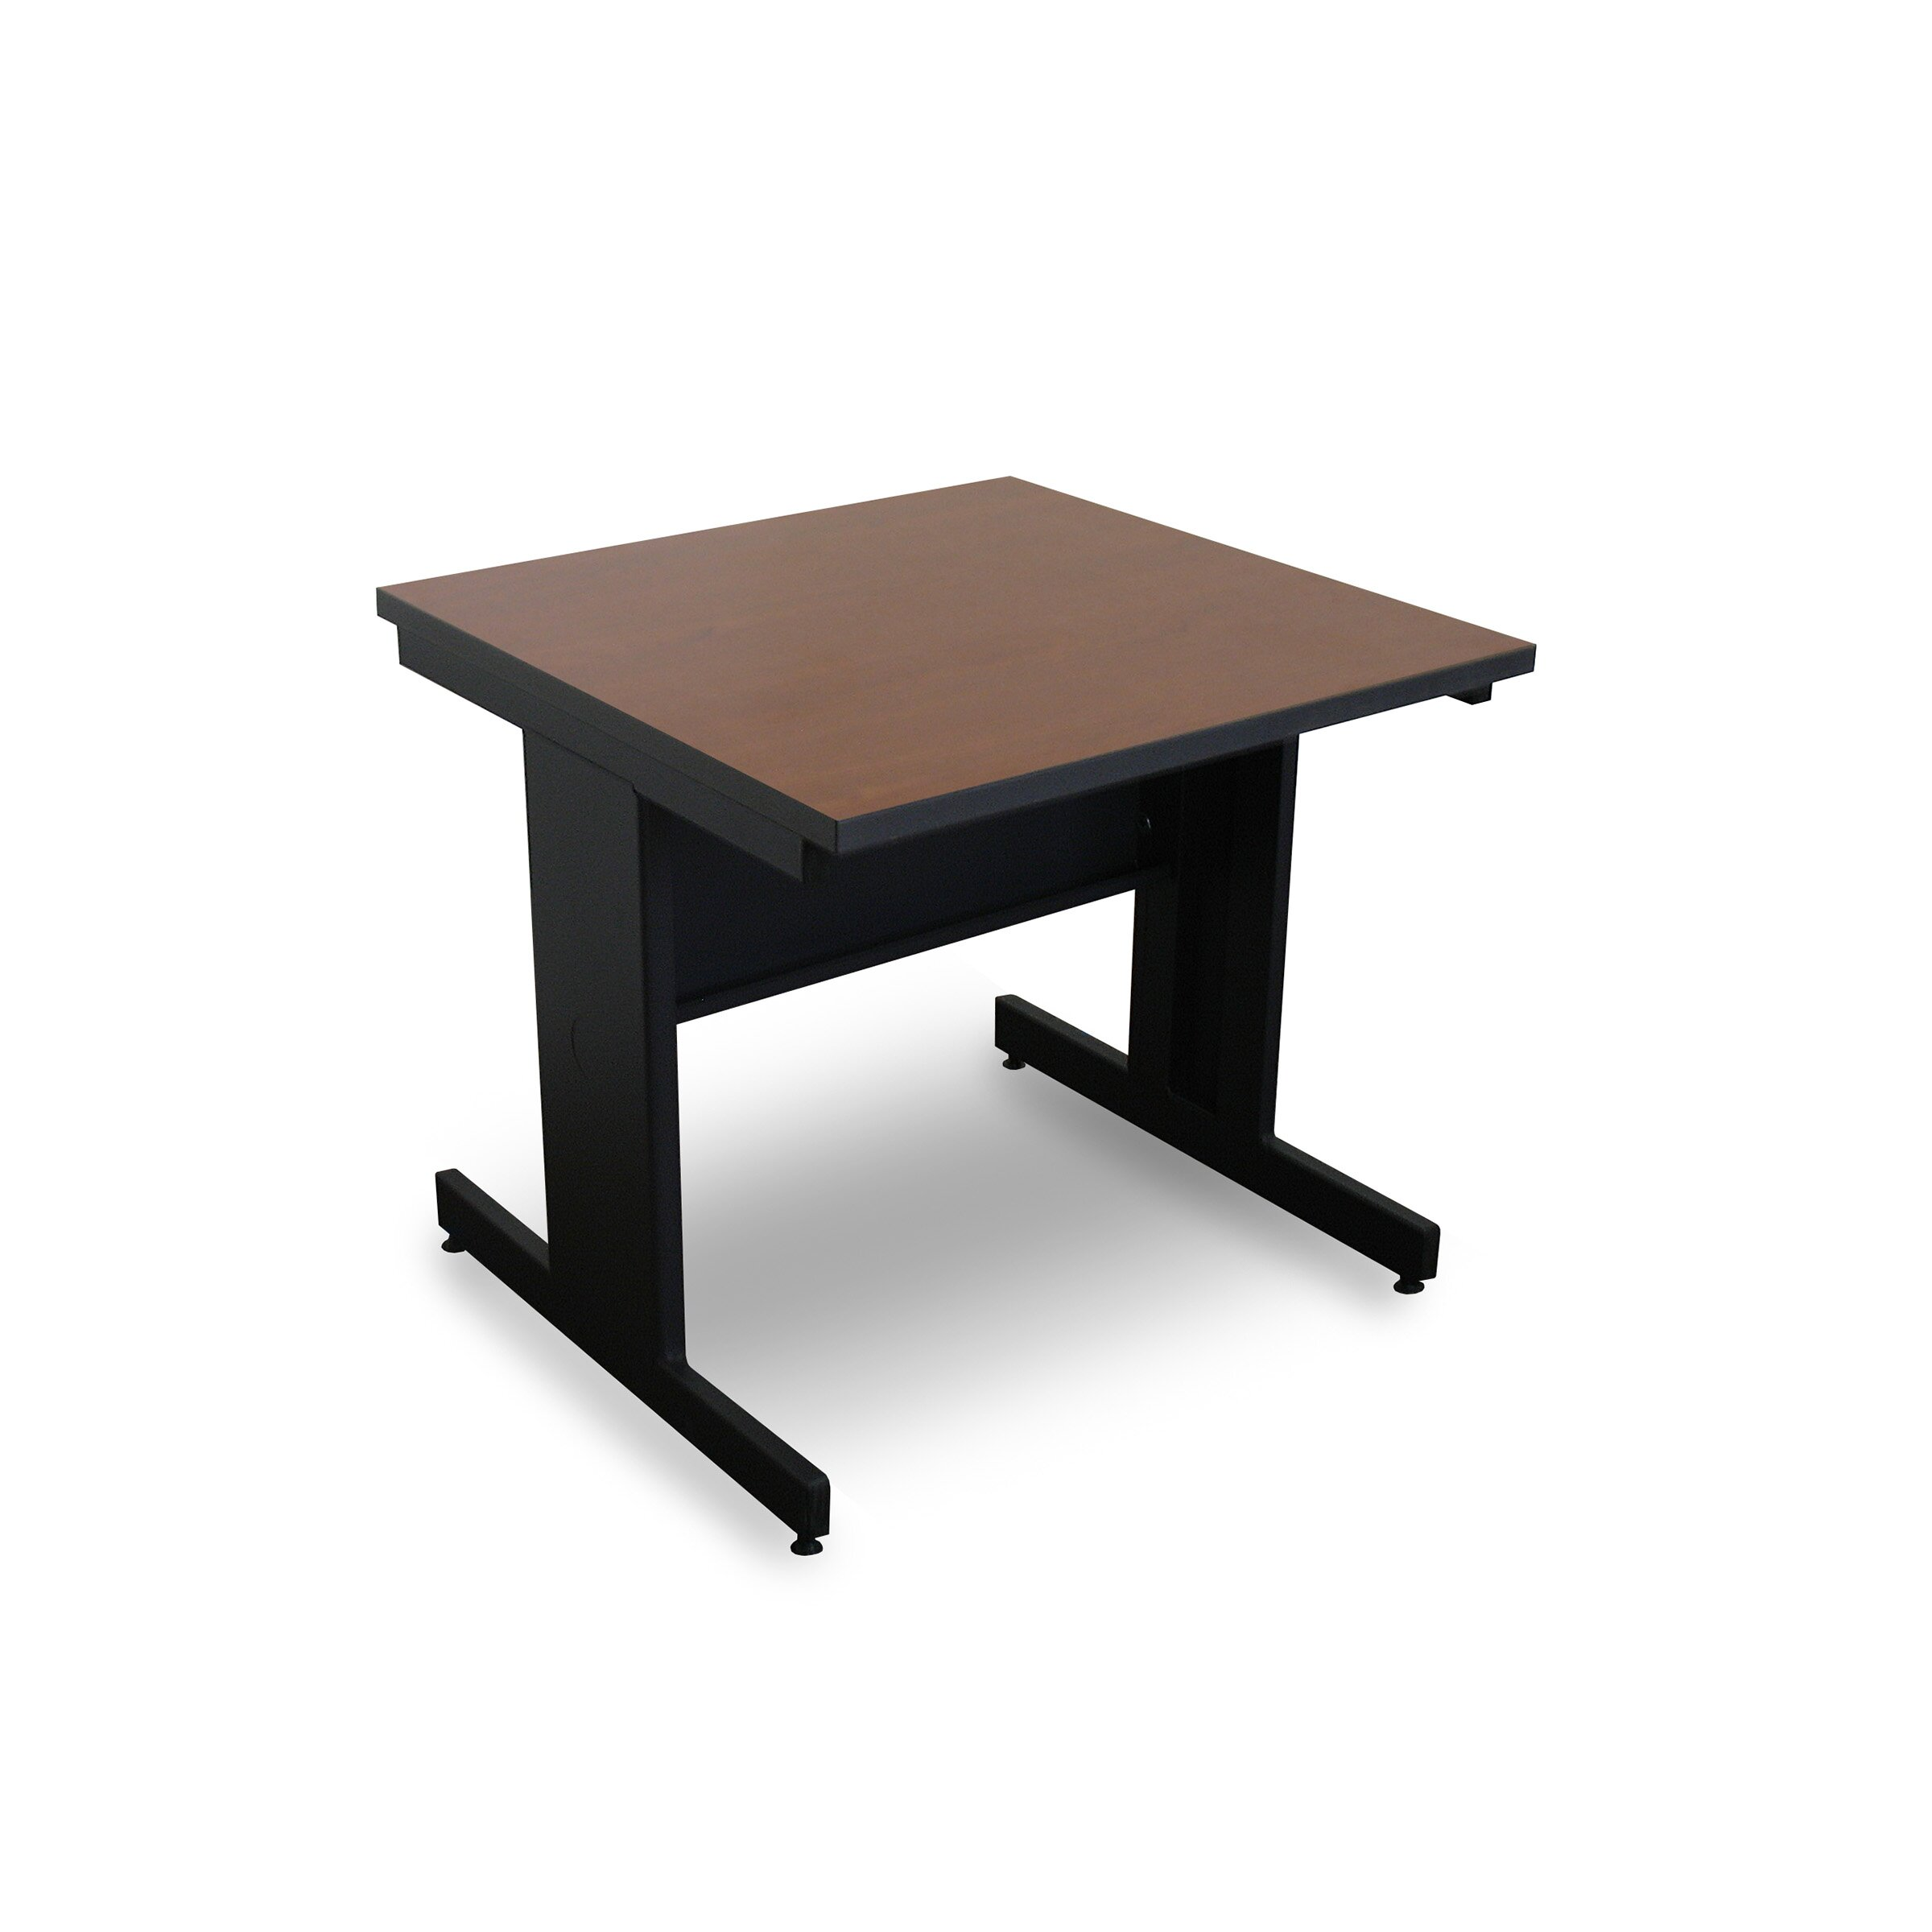 957brk08as ch 1g mayline corsica office table side end table cts